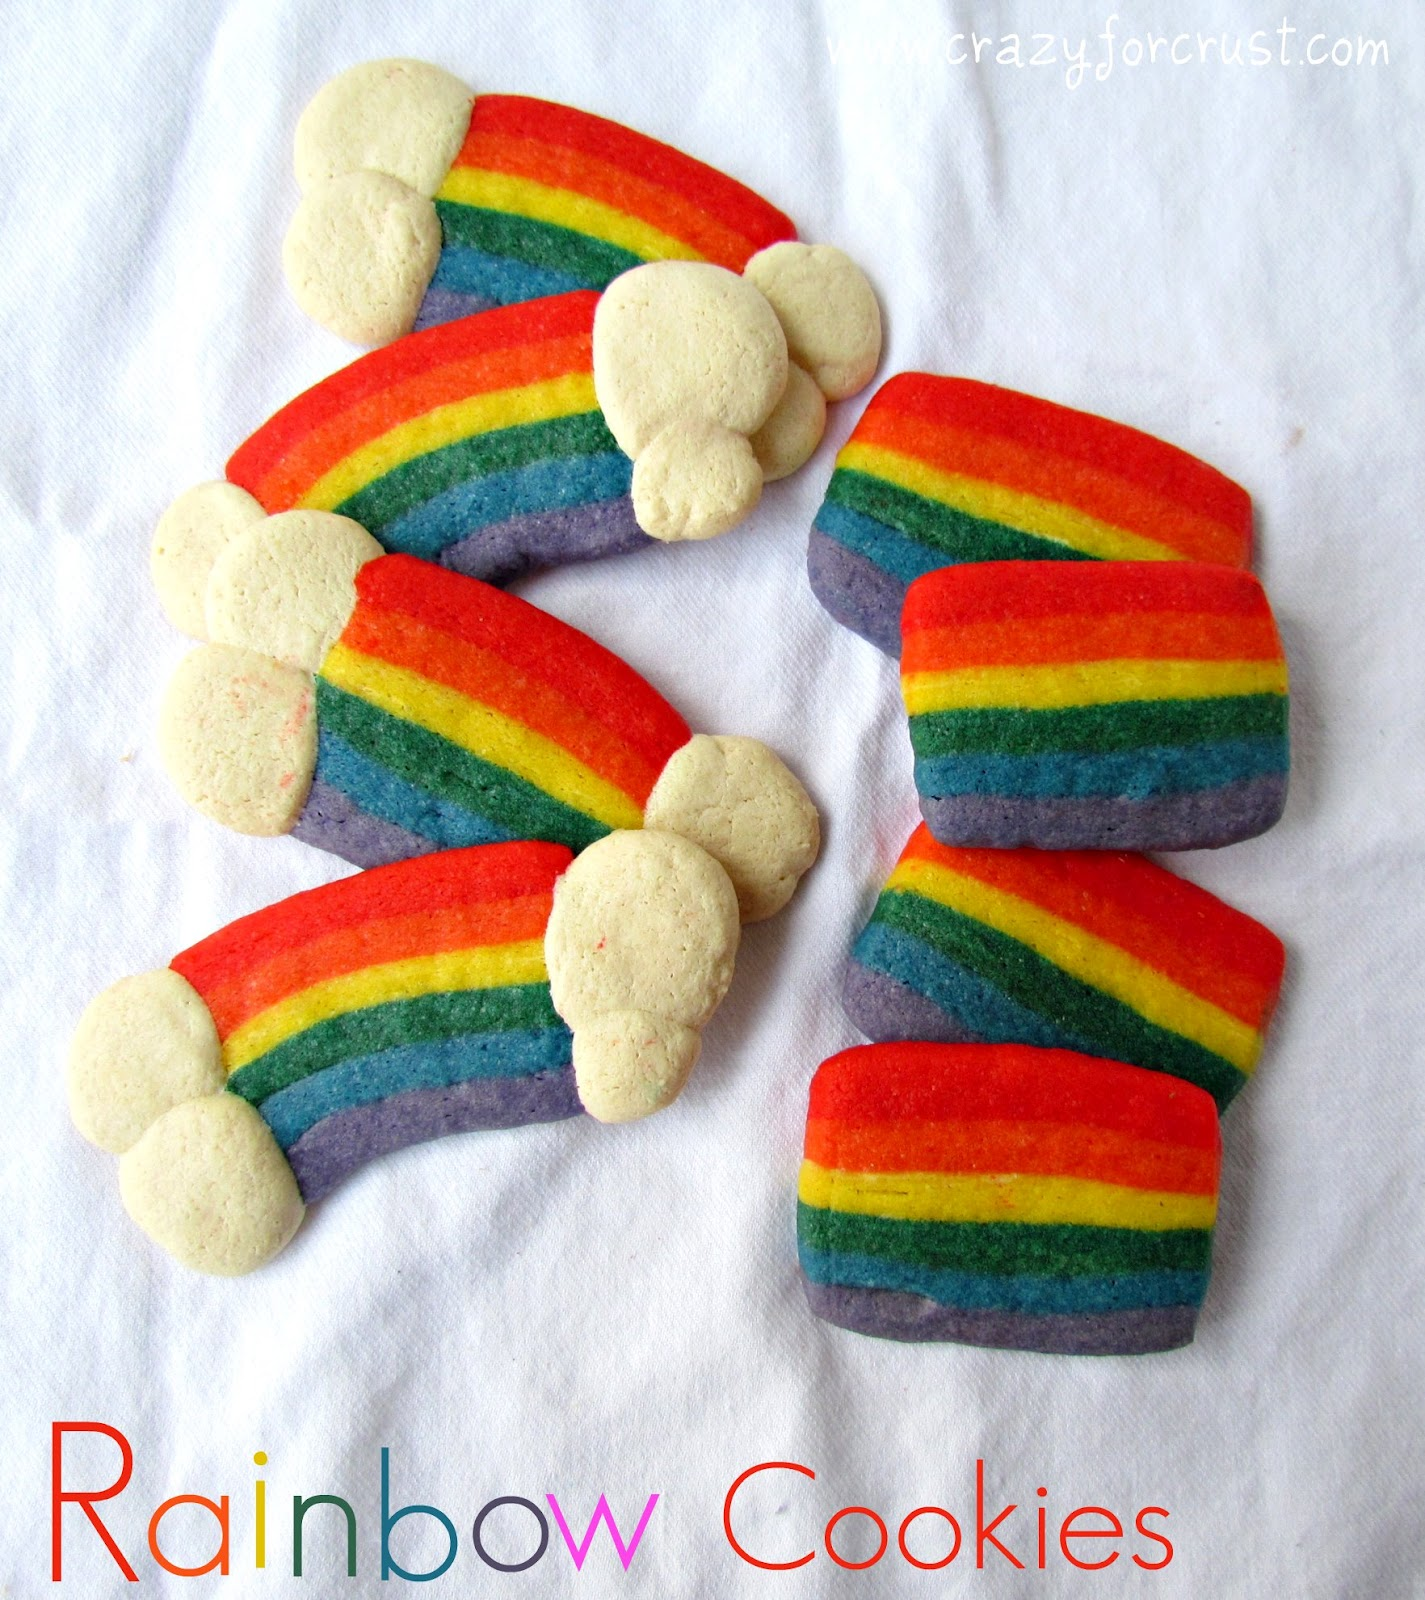 Slice-and-bake rainbow cookies recipe